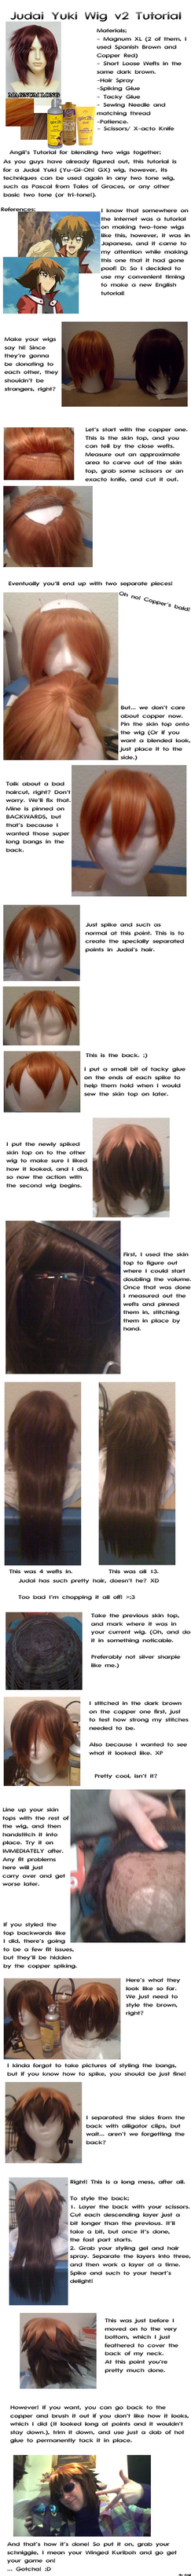 Judai Wig v2 Tutorial by AngiiAiKukki